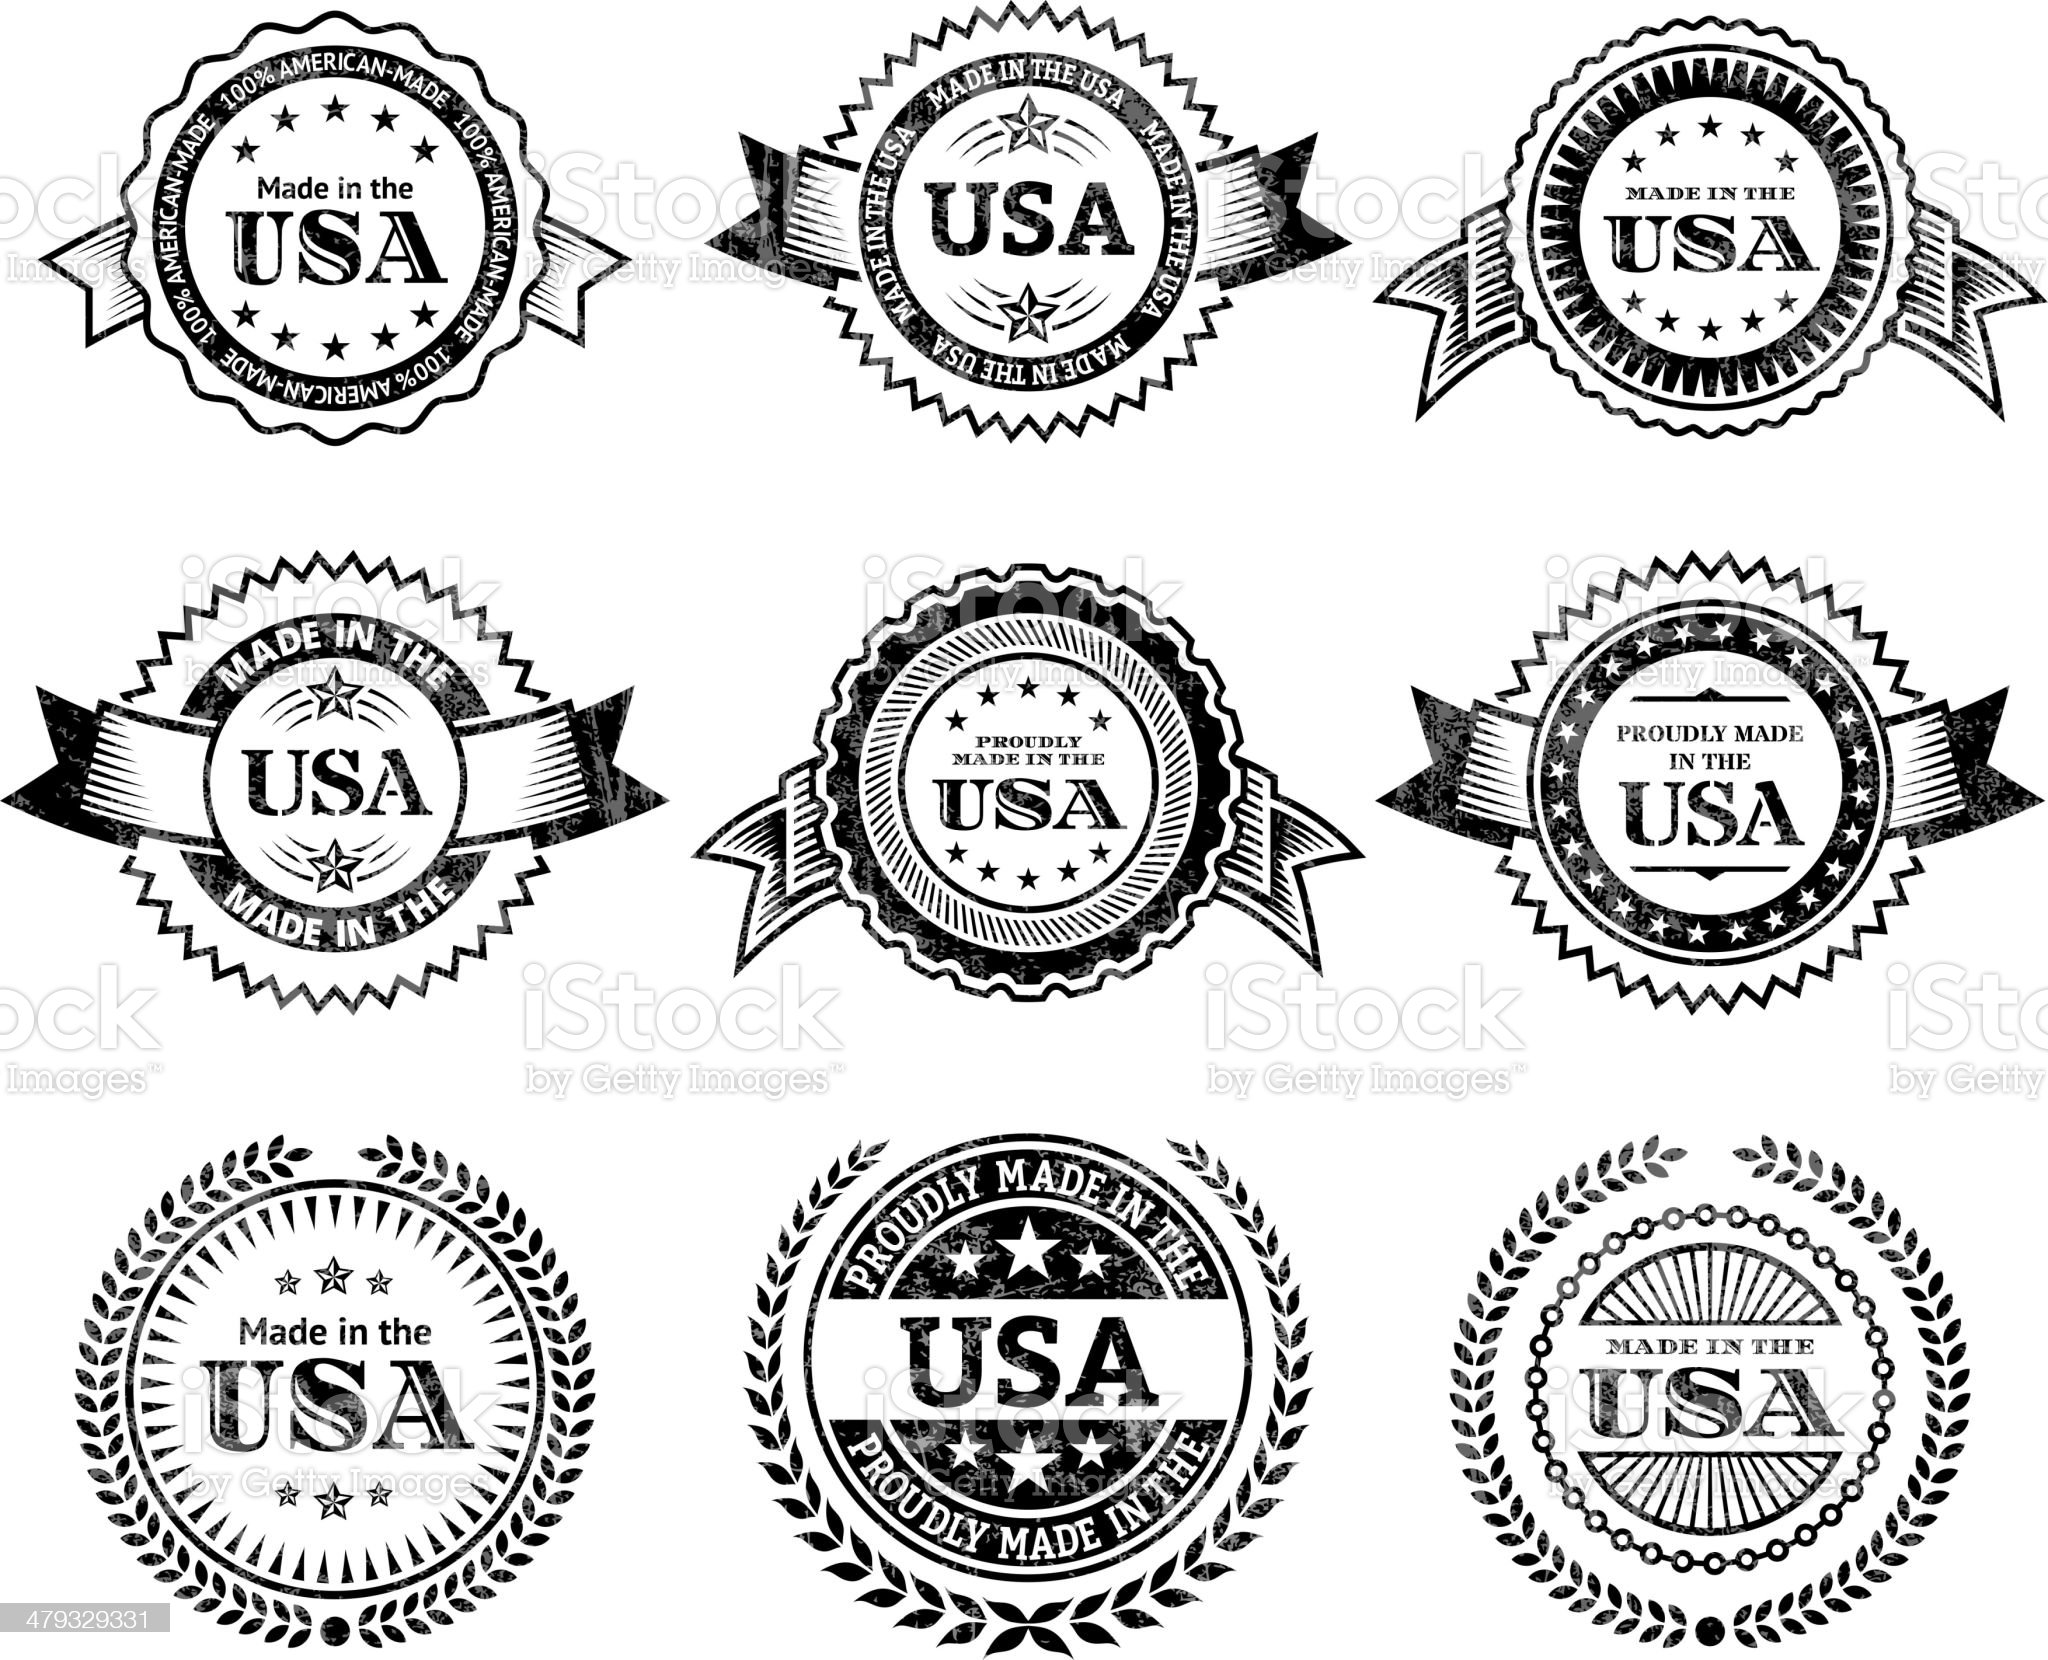 Made in the USA Badge black & white icon set royalty-free stock vector art